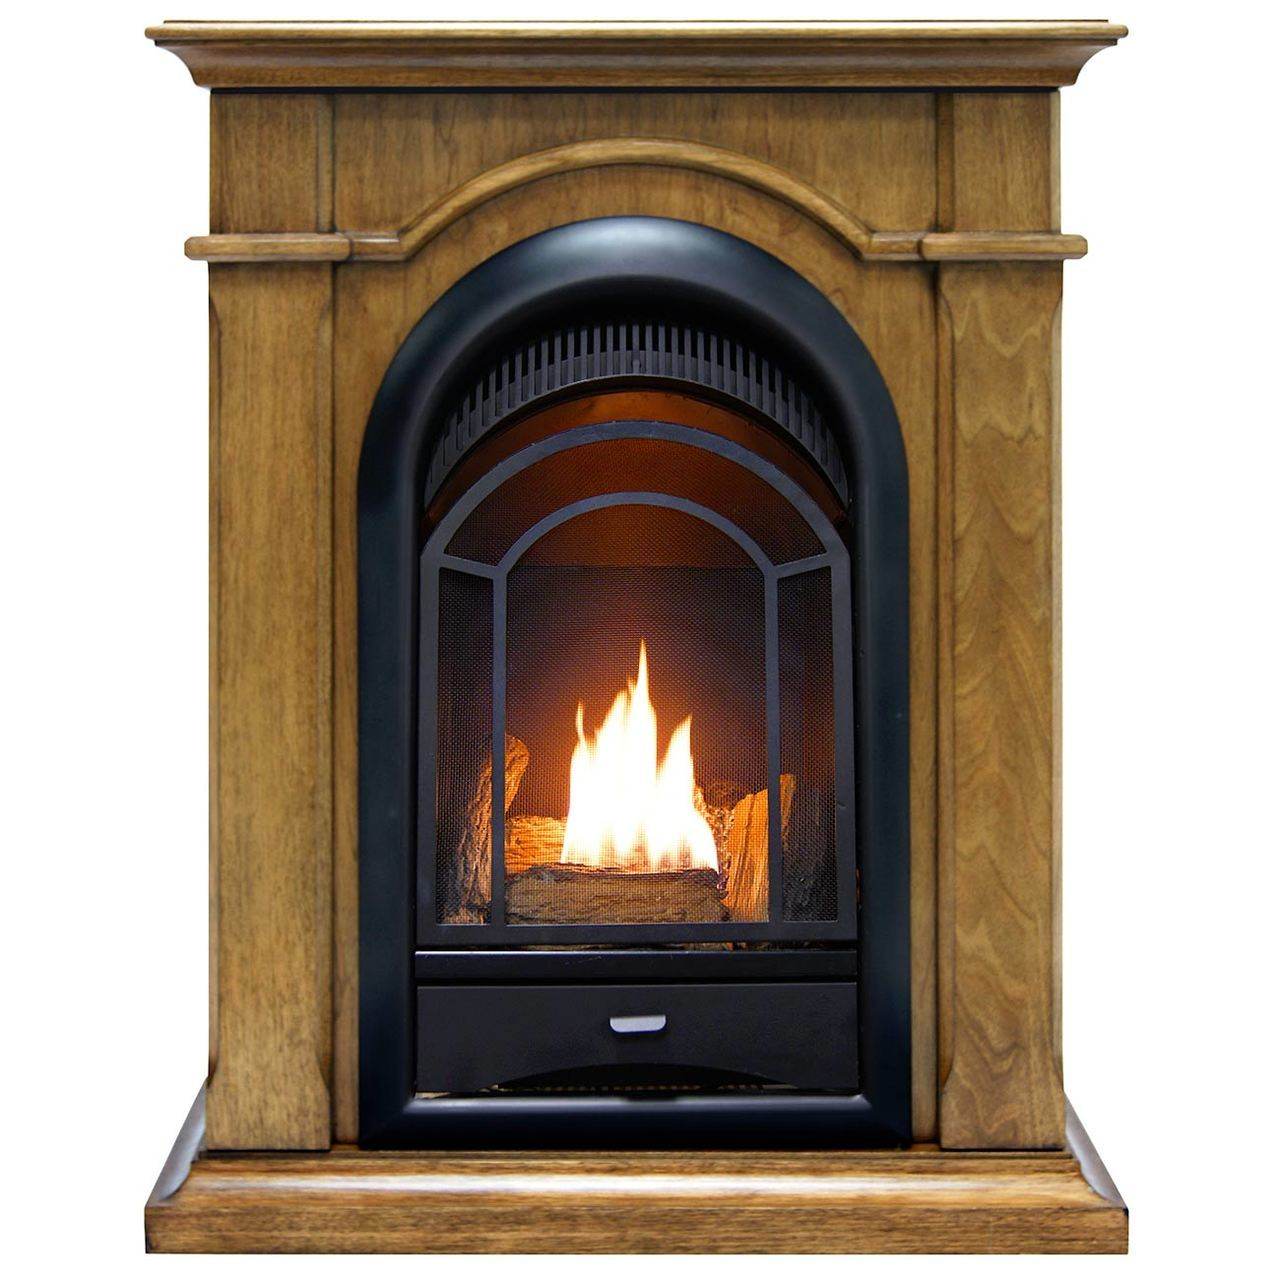 ProCom FS100T-TA Ventless Fireplace System 10K BTU Duel Fuel Thermostat Insert and Toasted Almond... by